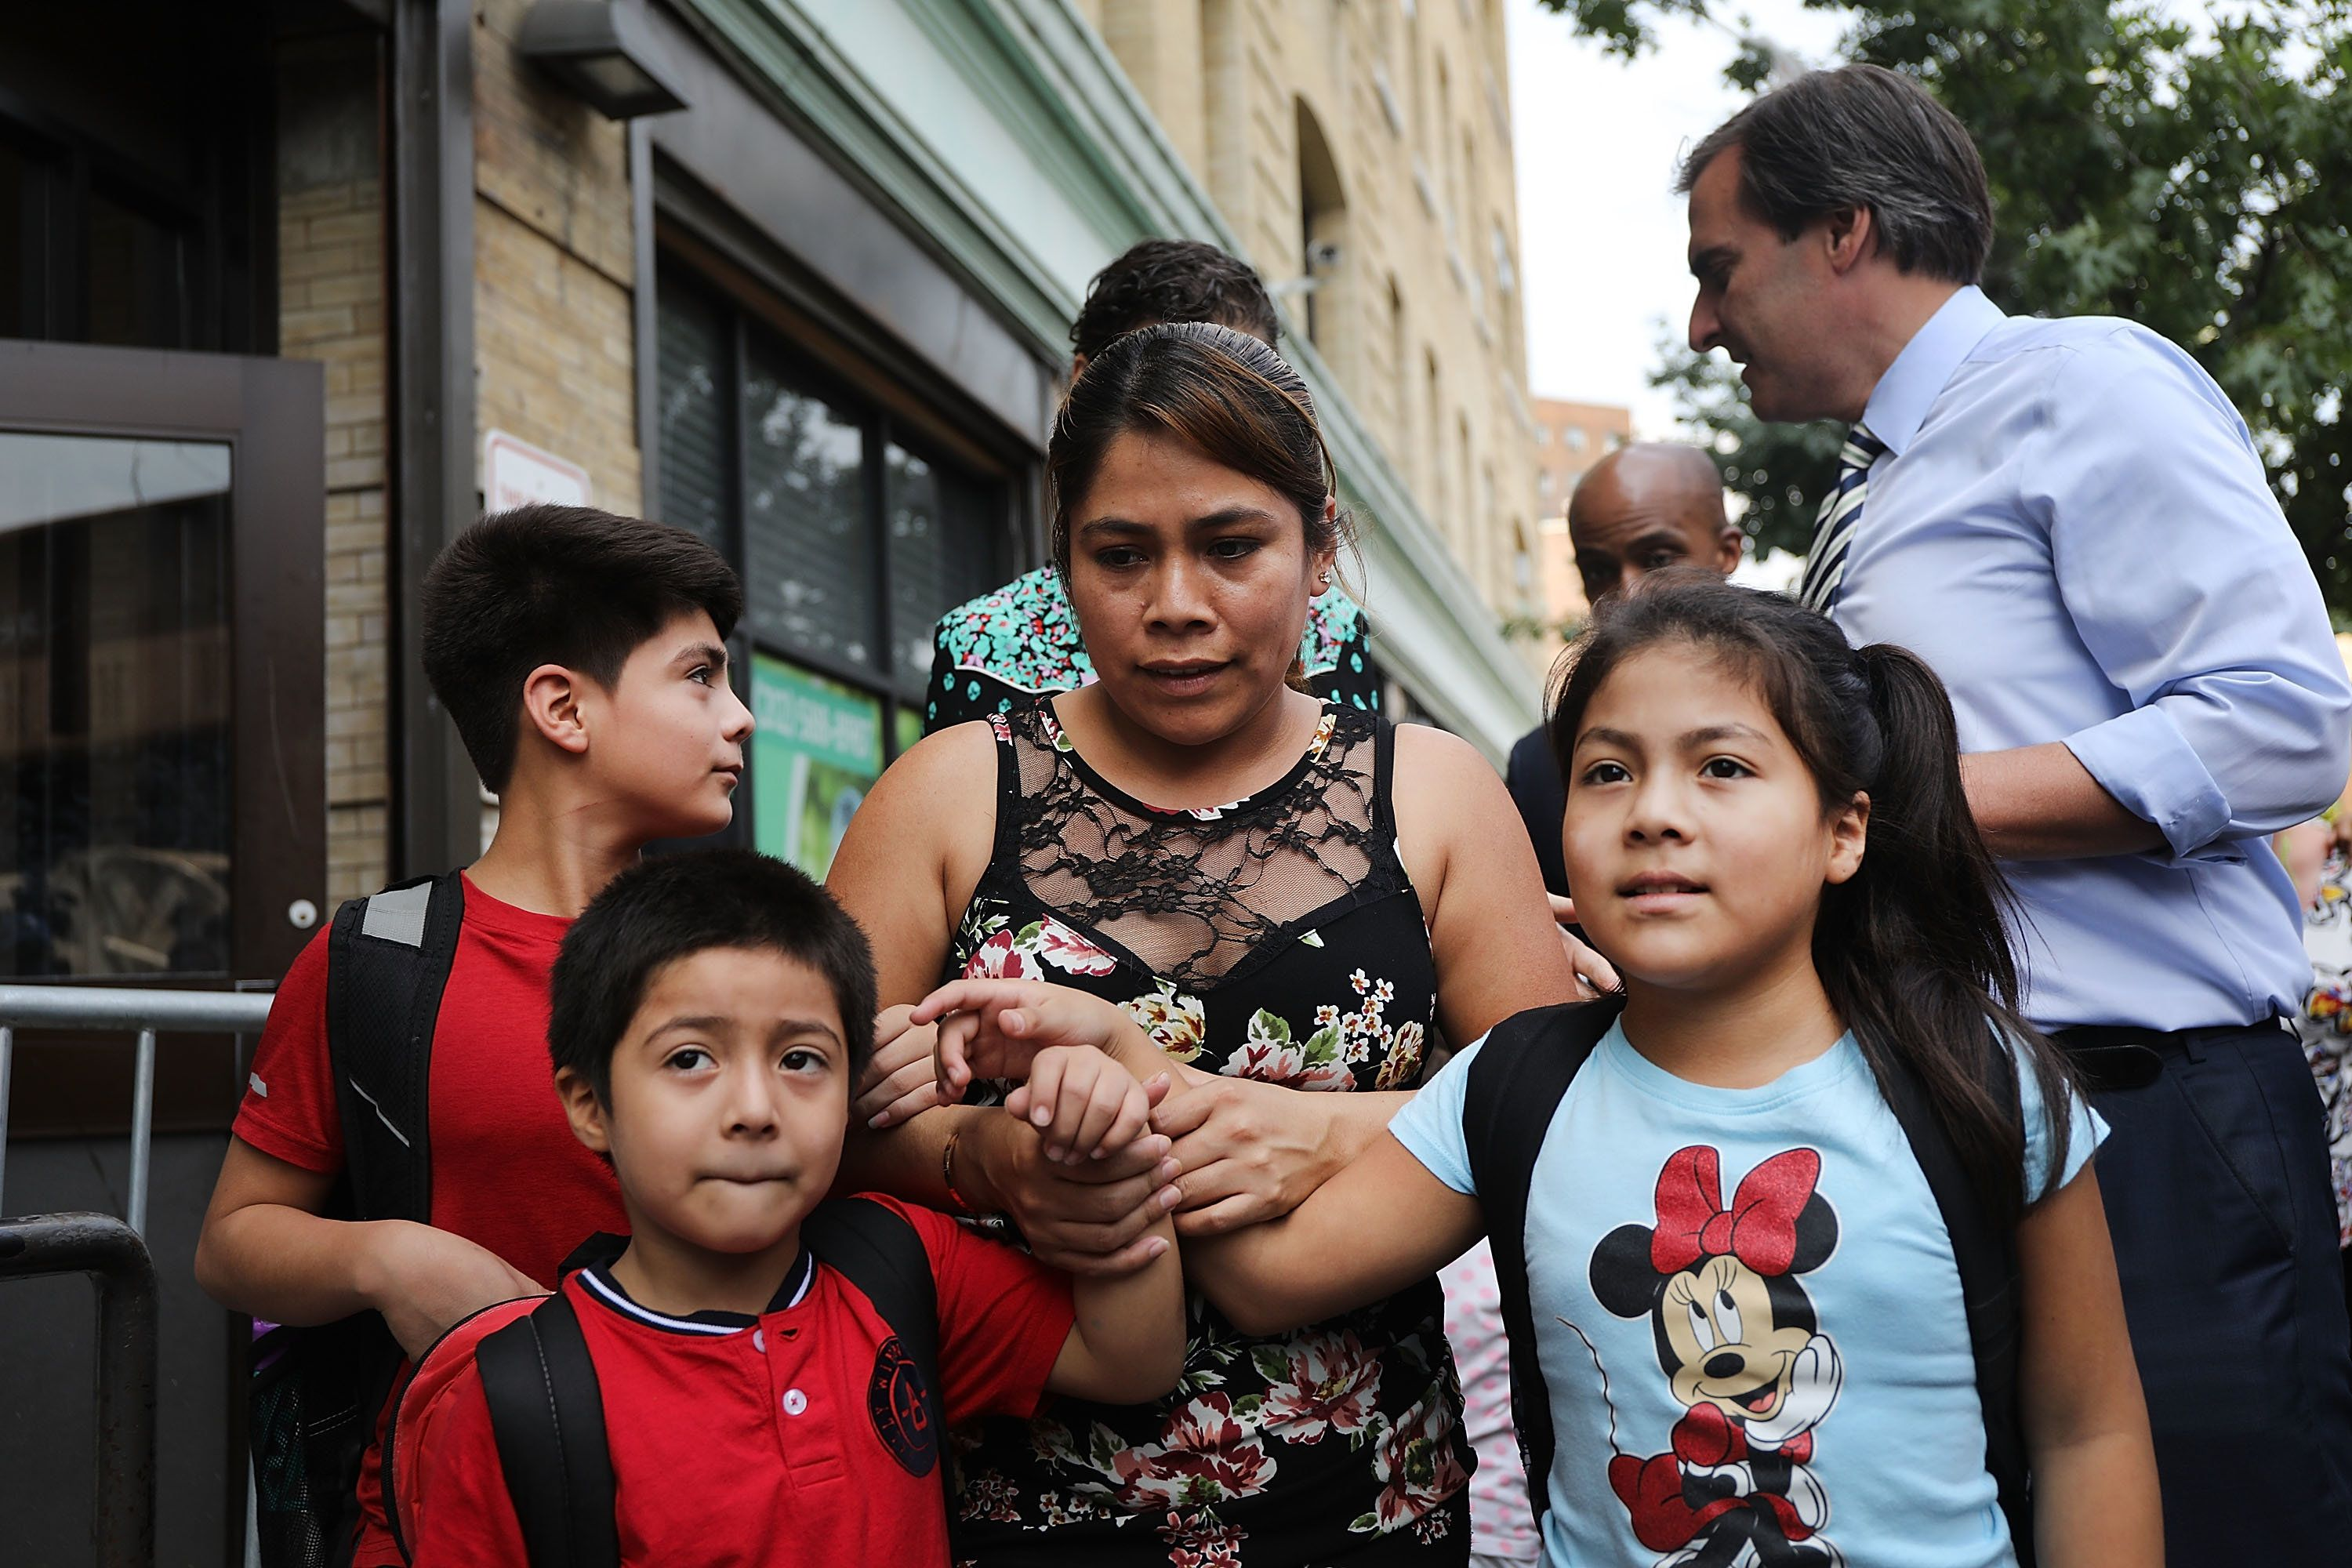 Yeni Maricela Gonzalez Garcia holds fast to 11-year-old Lester, left, 6-year-old Deyuin and, 9-year-old Jamelin and  as